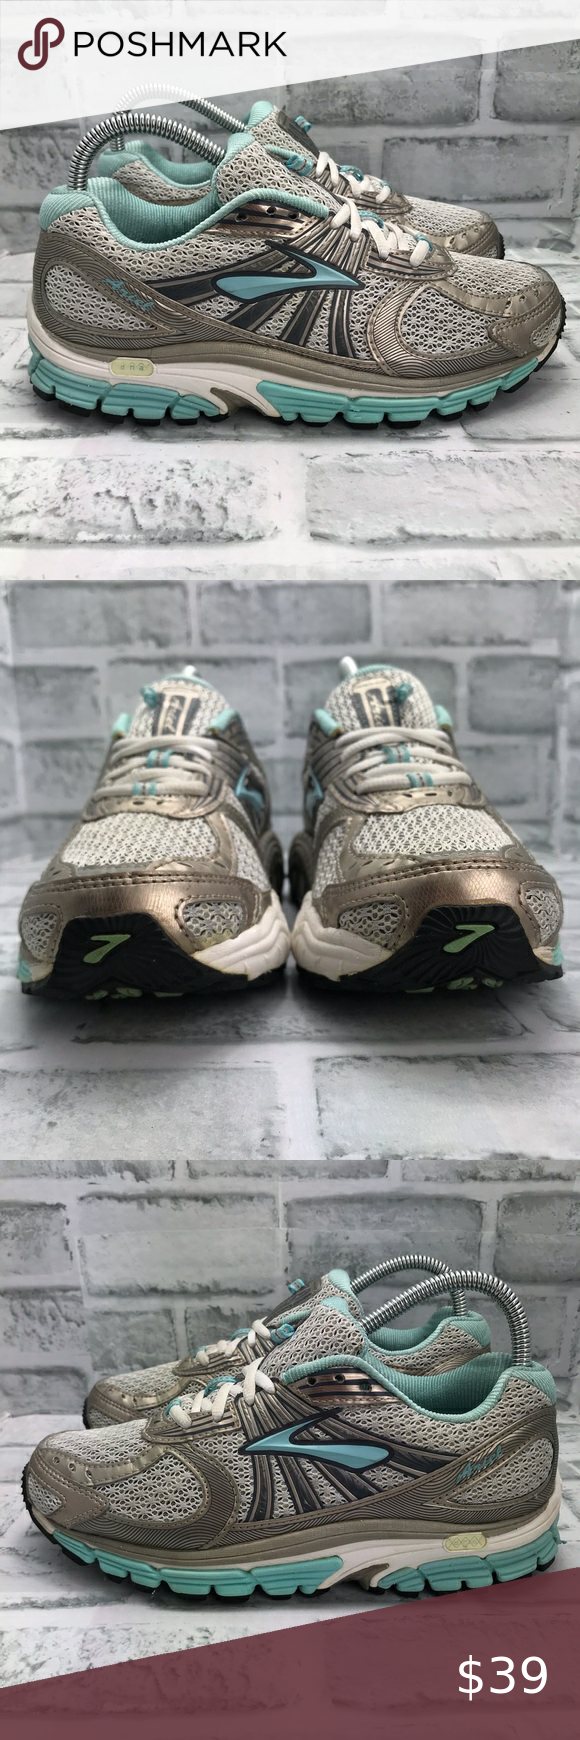 Brooks Ariel 12 Running Shoes in 2020